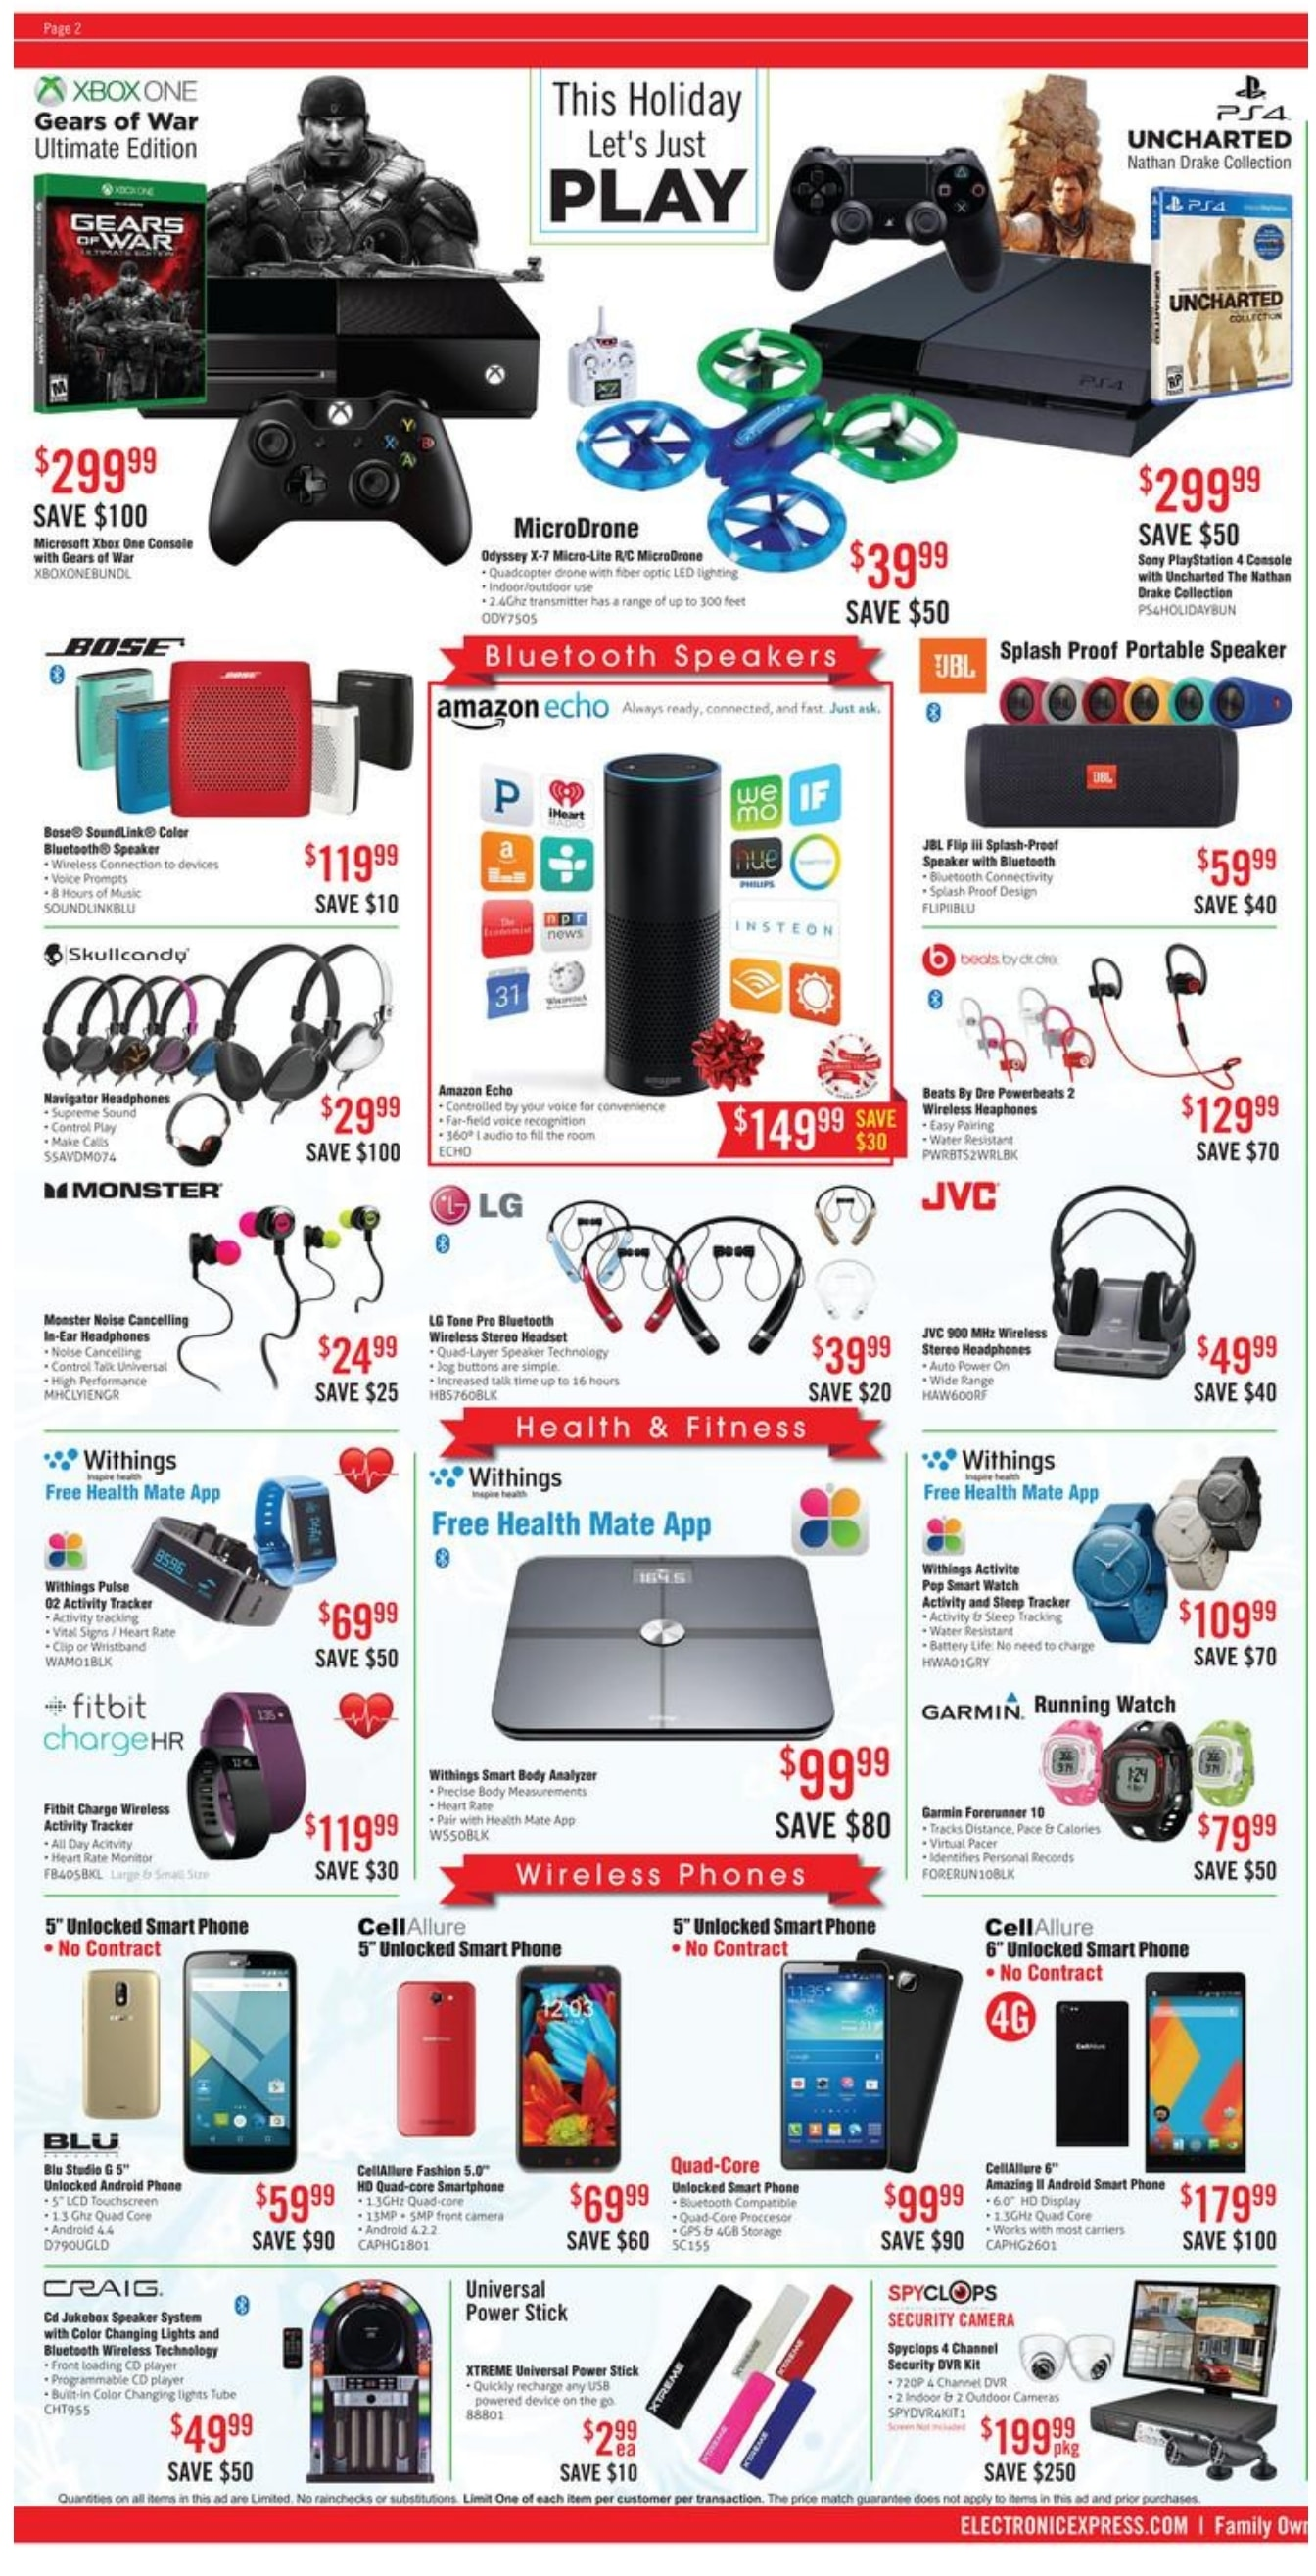 Electronic Express Black Friday Ad 2015